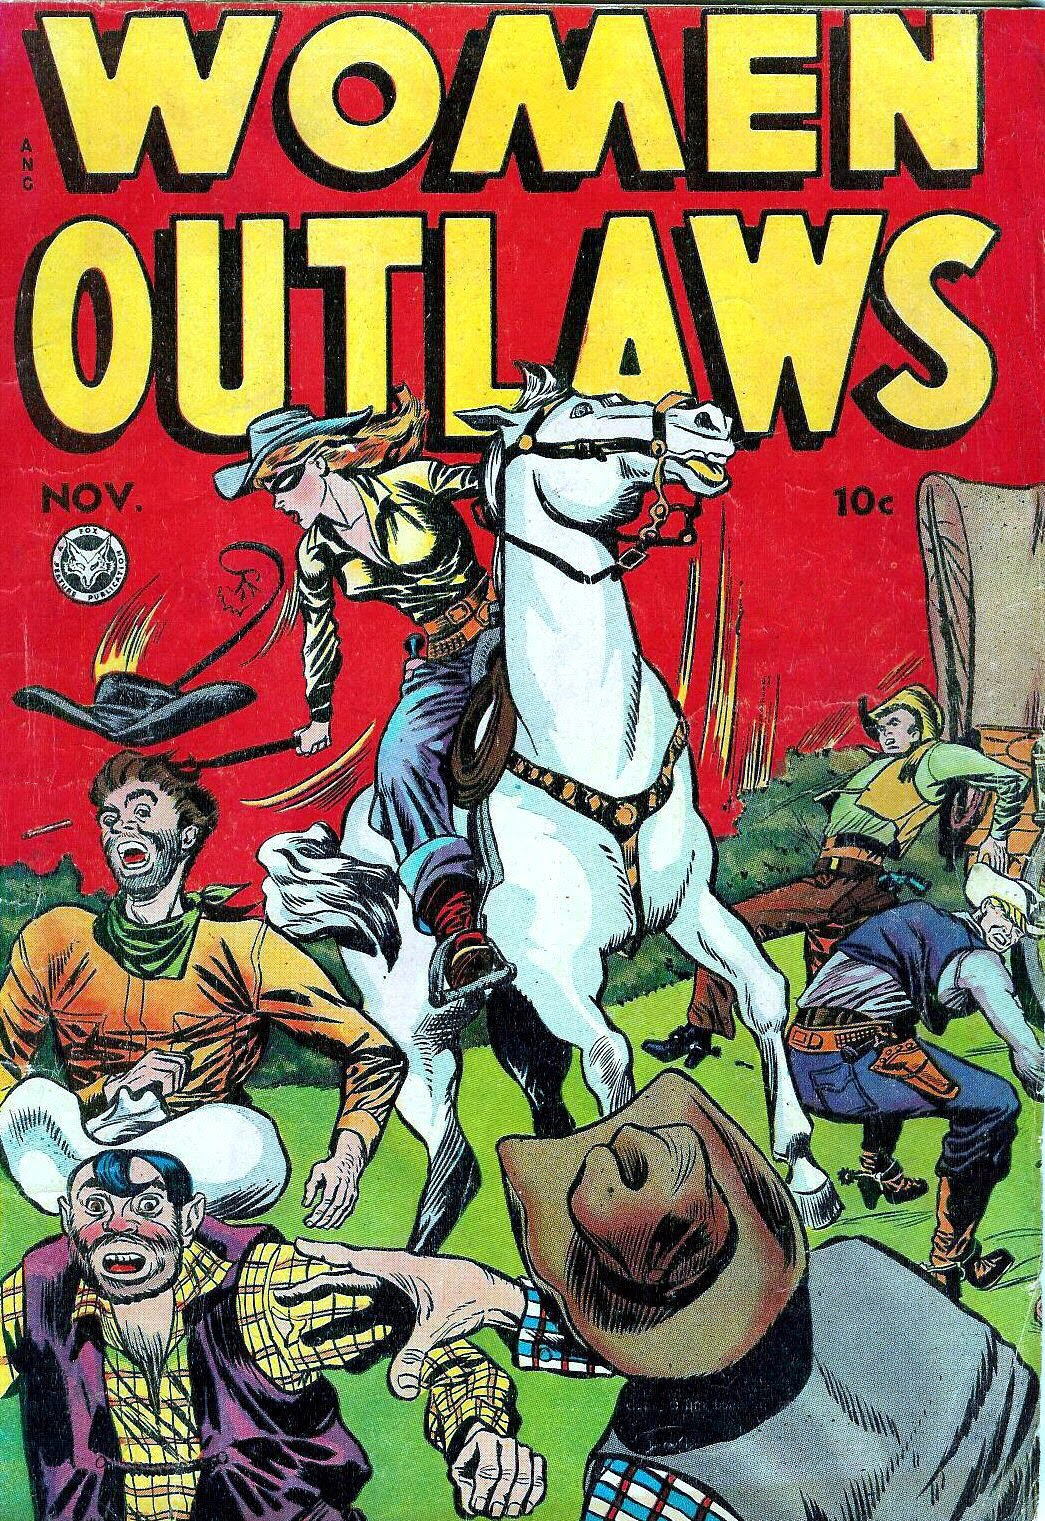 Read online Women Outlaws comic -  Issue #3 - 1